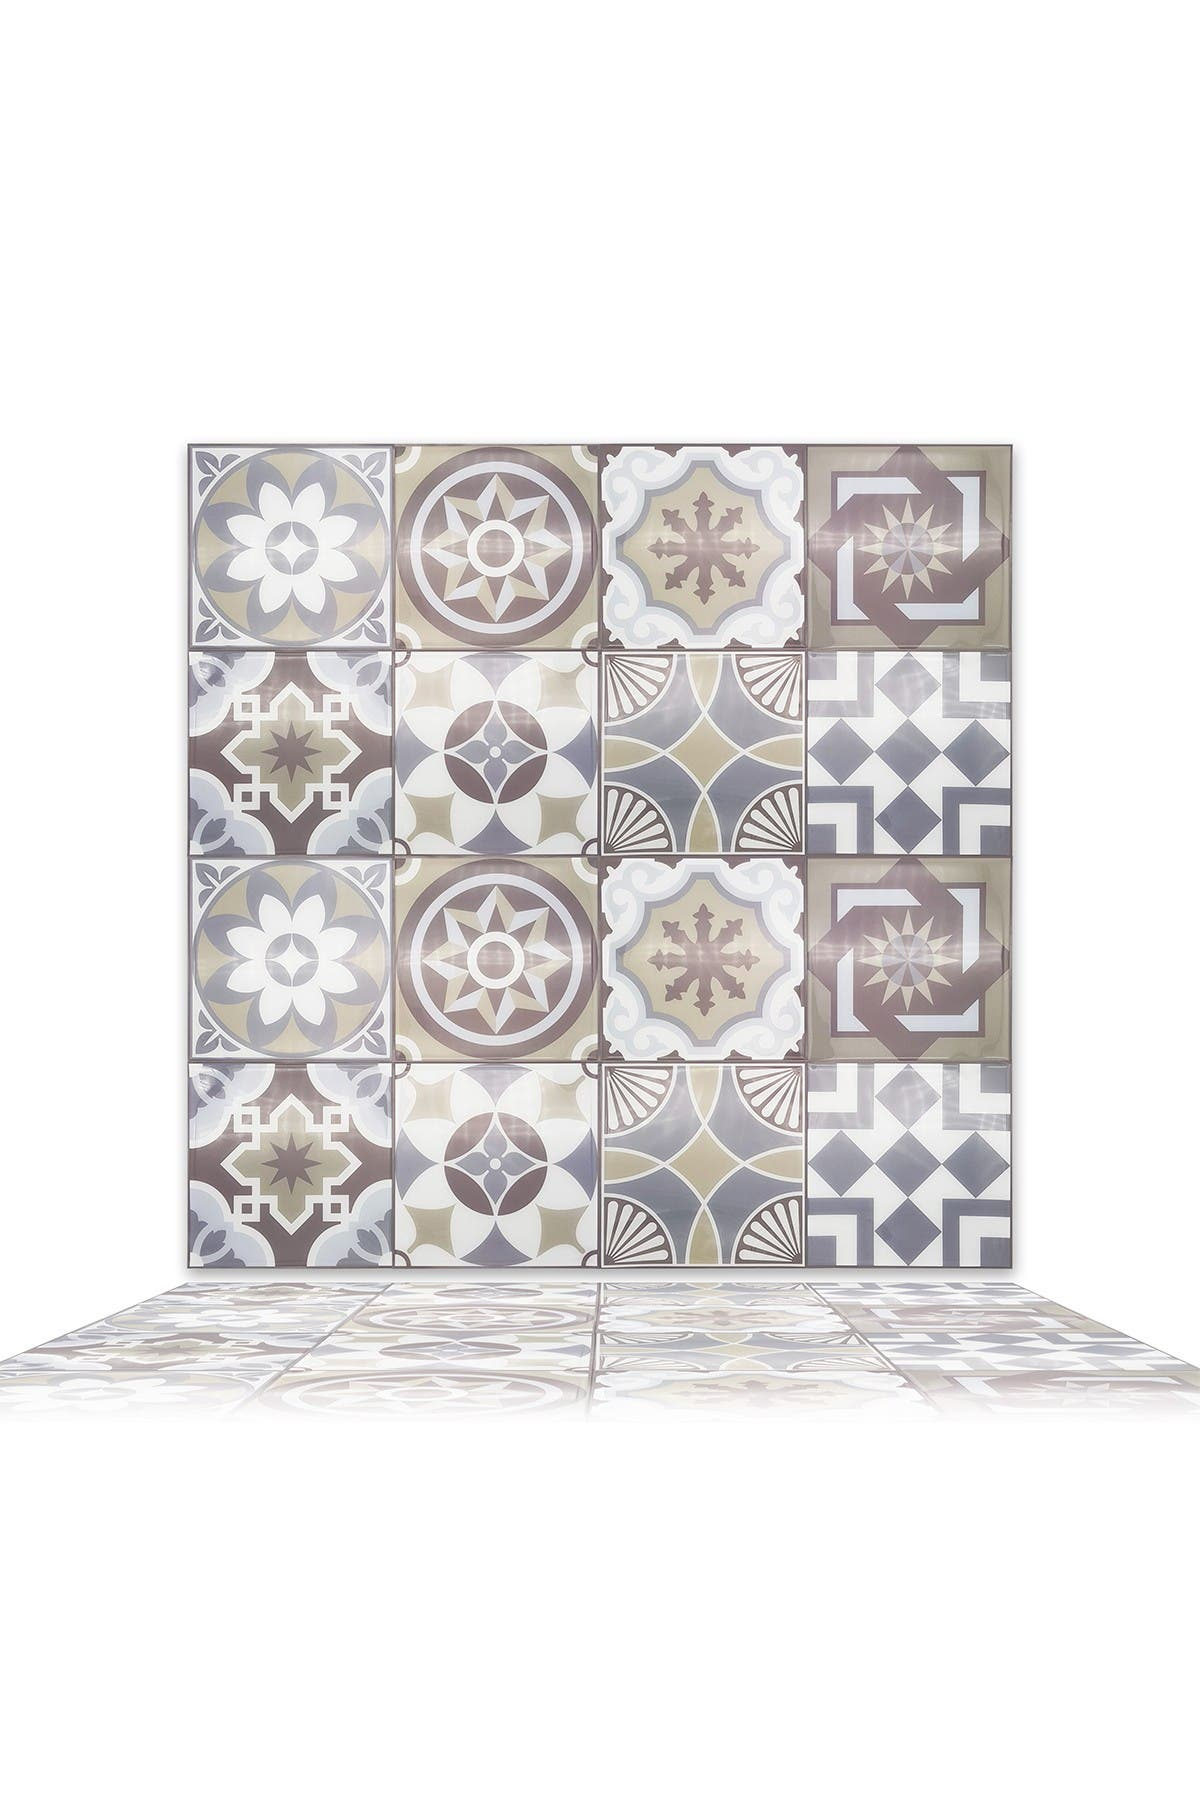 """Image of WalPlus Limestone Spanish Glossy 3D Sticker Tile - 15cm (6"""") - 16-Piece in a pack"""